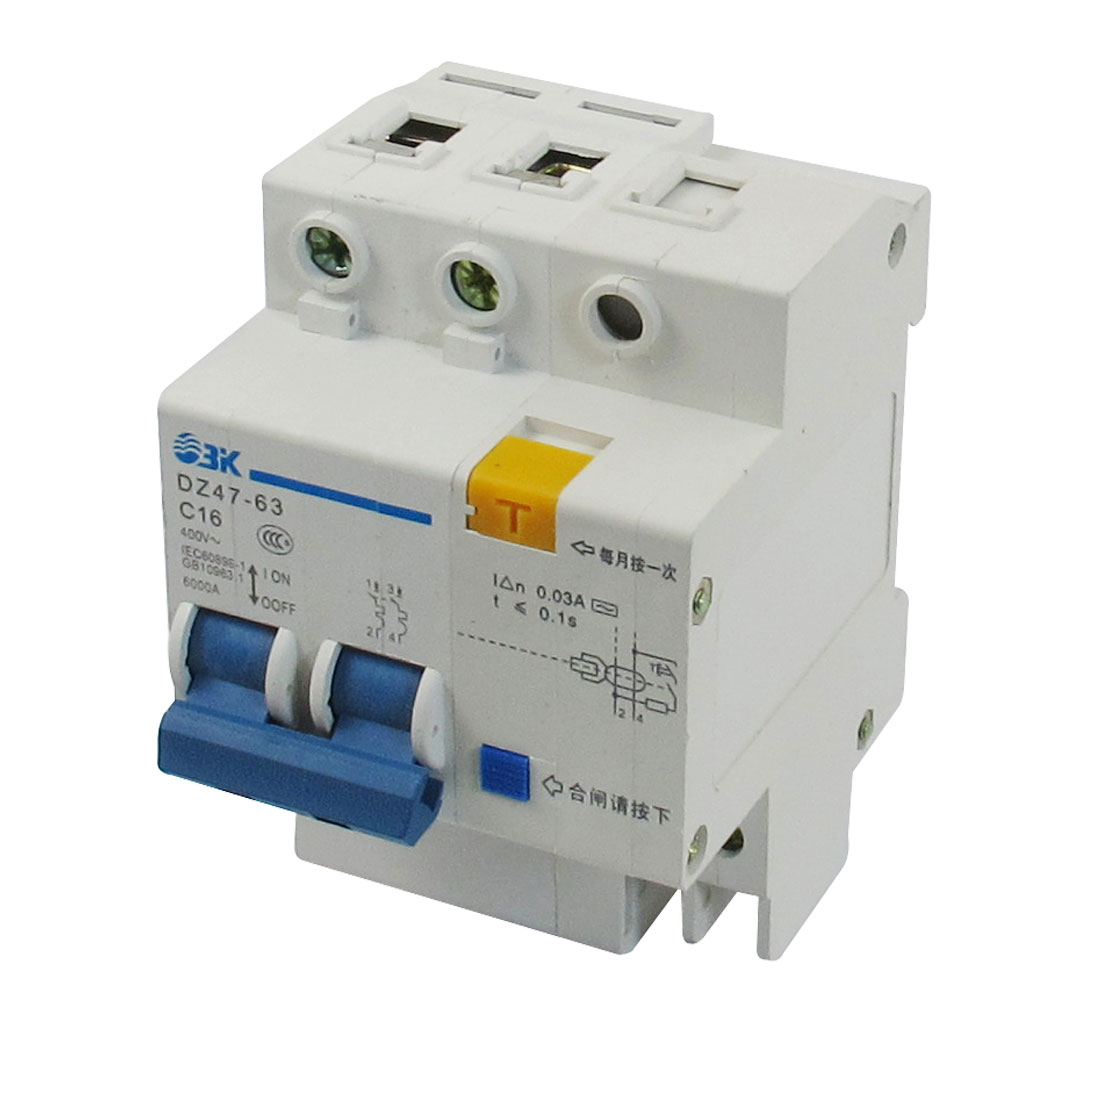 AC 400V 16A 6000A Breaking Capacity DIN Rail 2P+N Earth Leakage Circuit Breaker